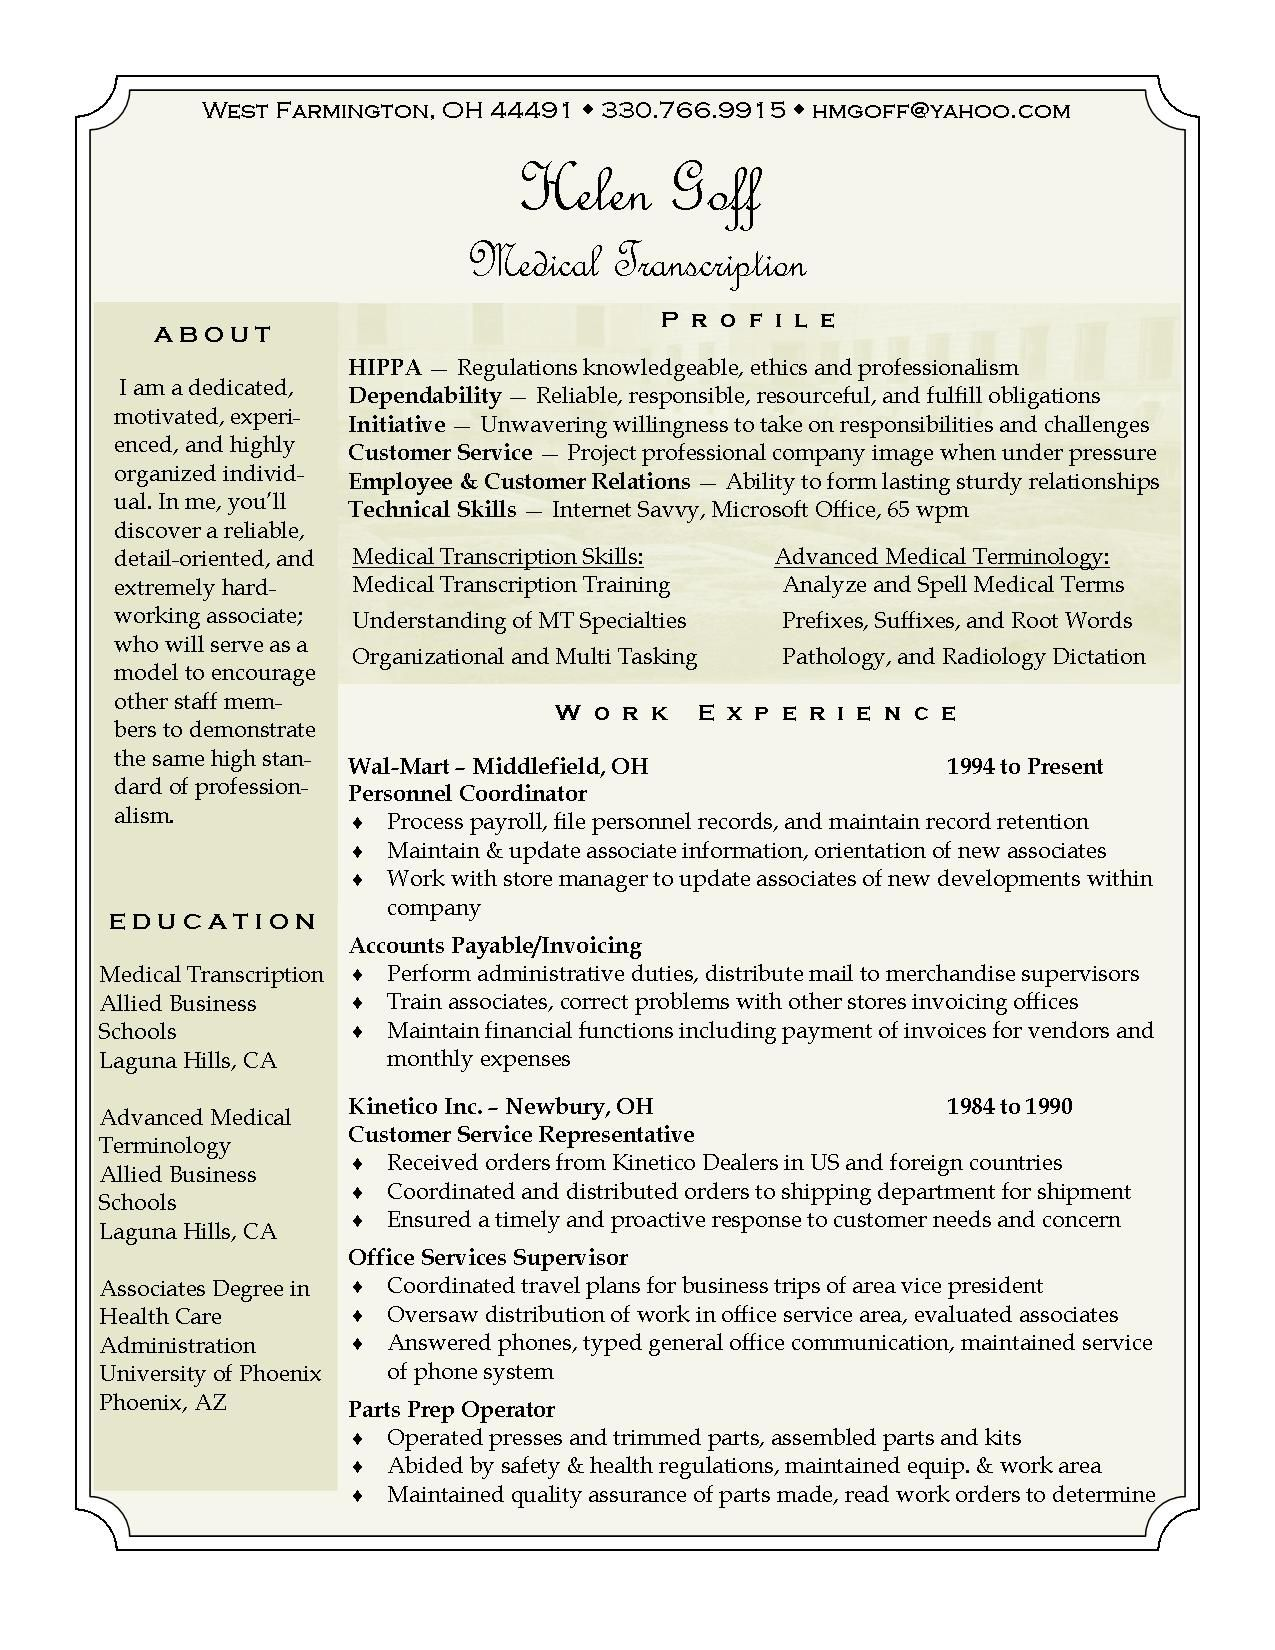 Helen Goff Resume   Medical Transcription #resume #career  Medical Transcriptionist Resume